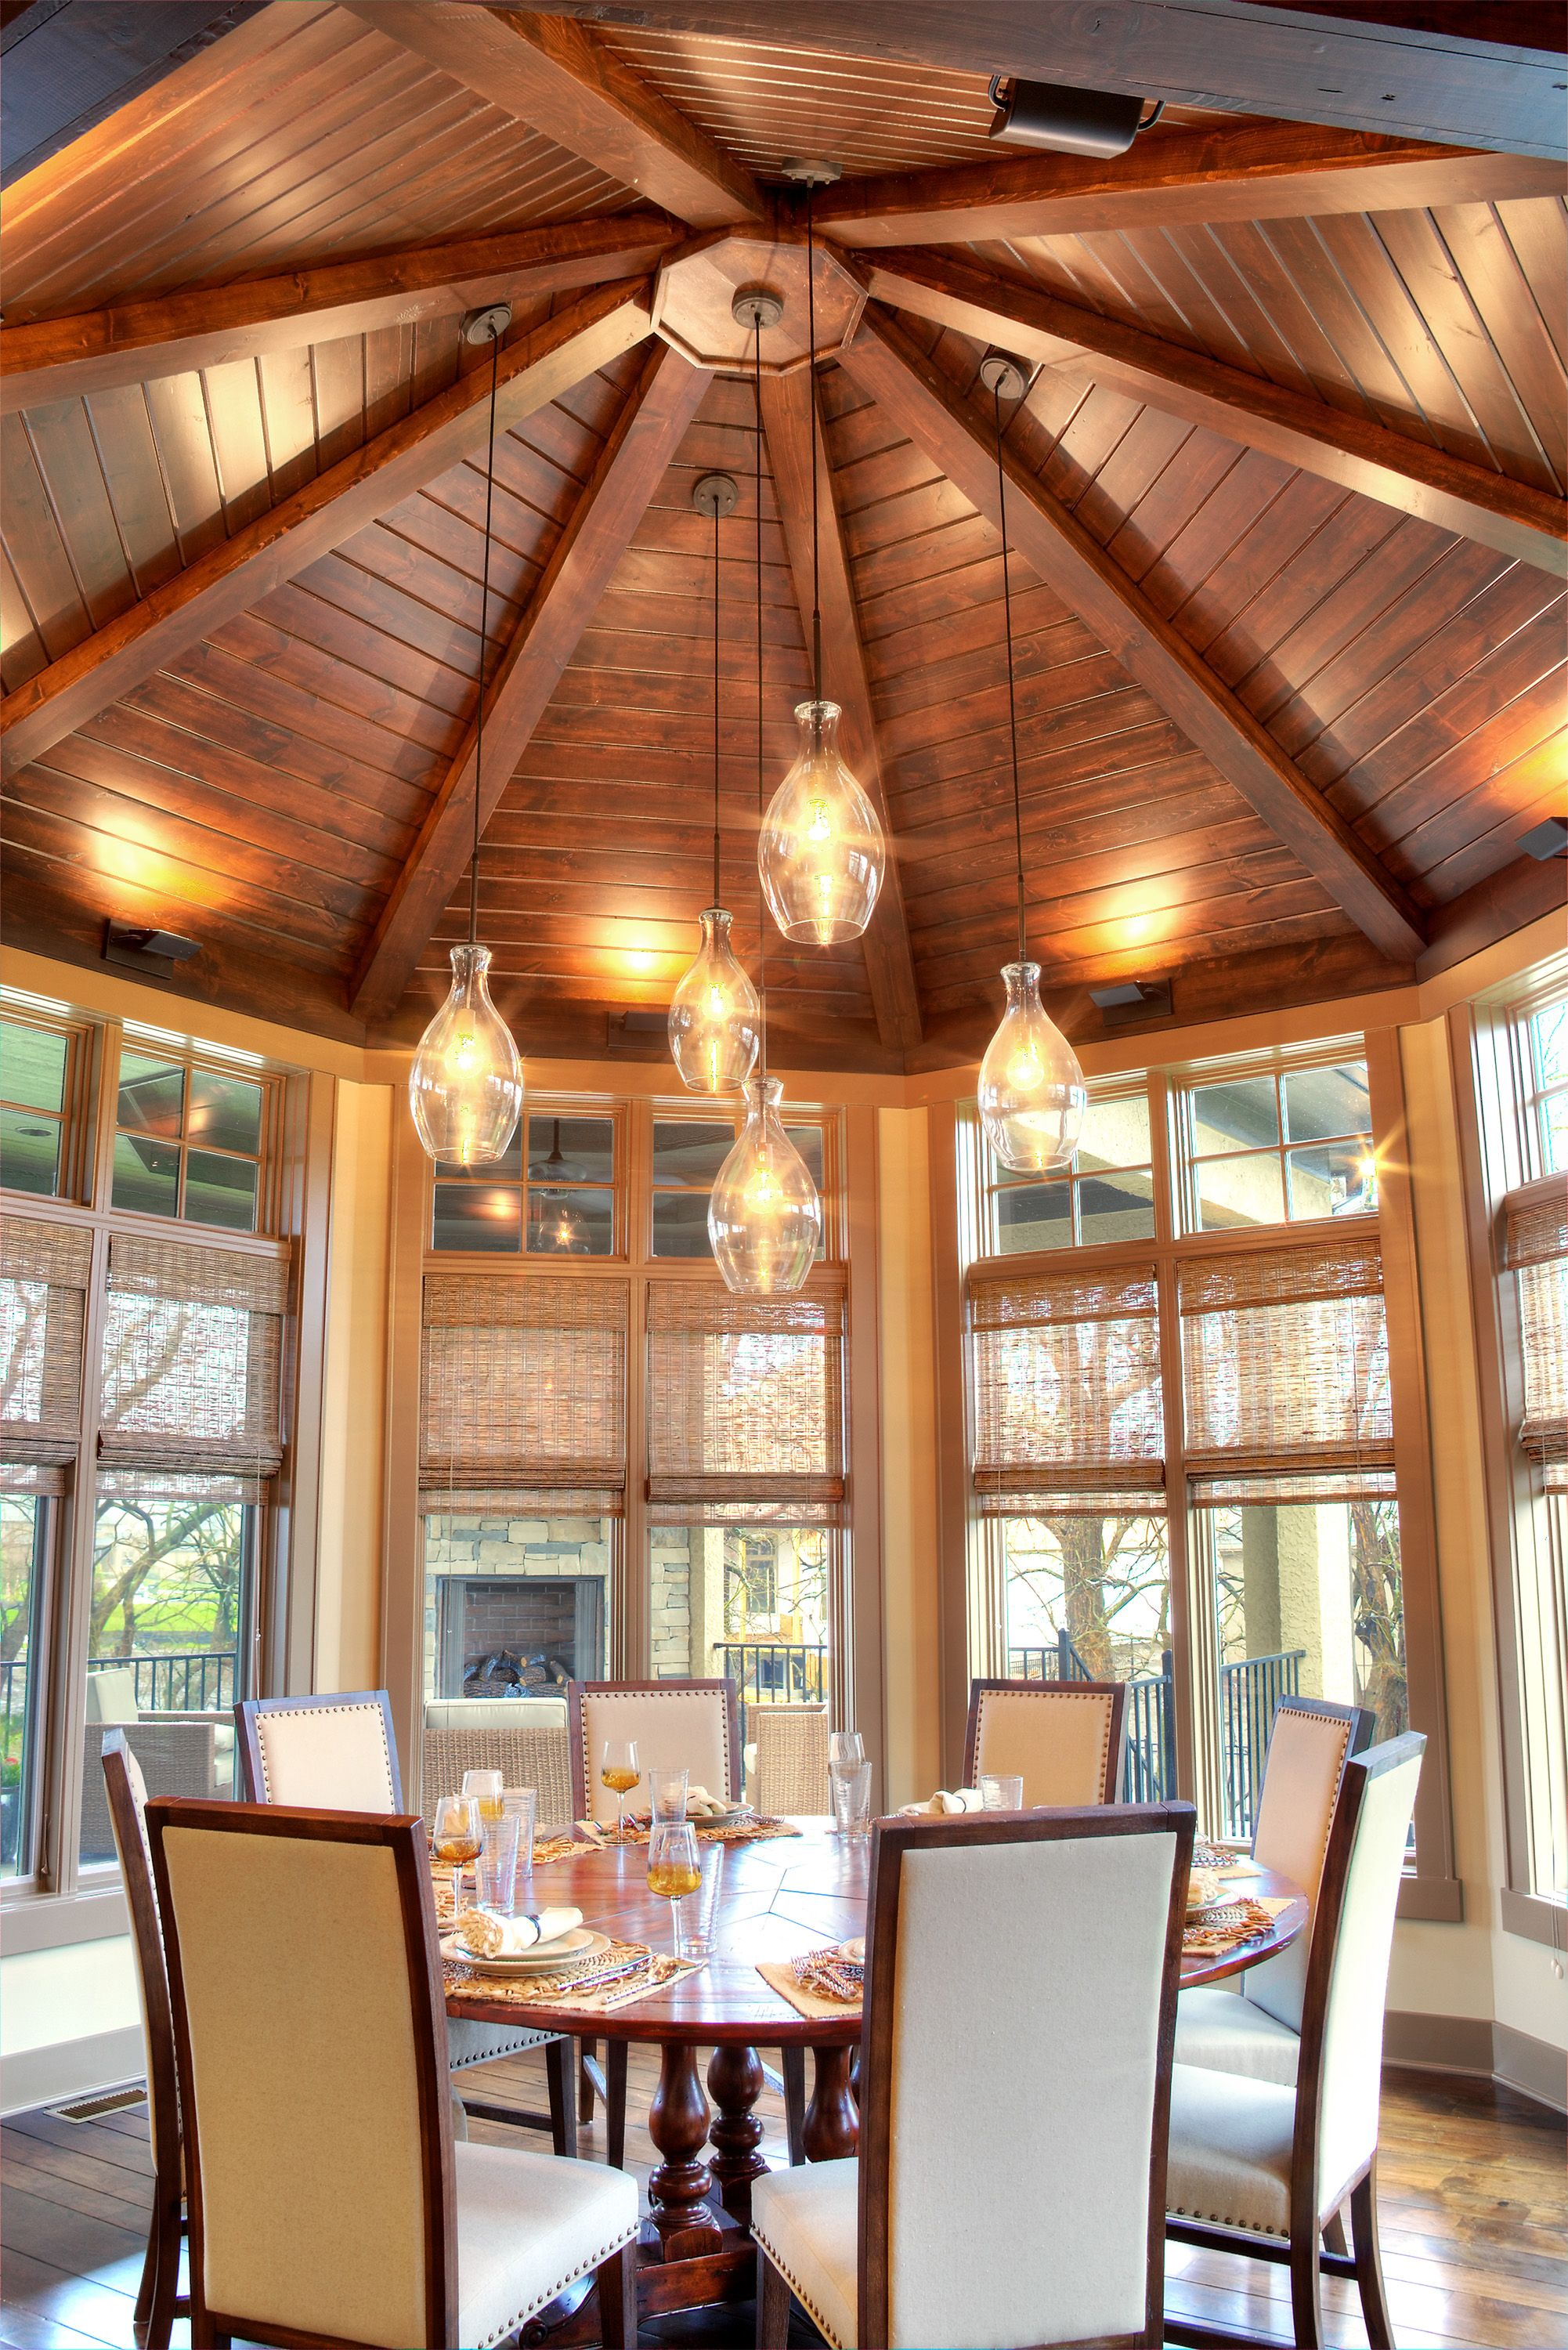 This Amazing Octagonal Dining Room With A Vaulted Wood Ceiling And Spectacular Lighting Was Taken From